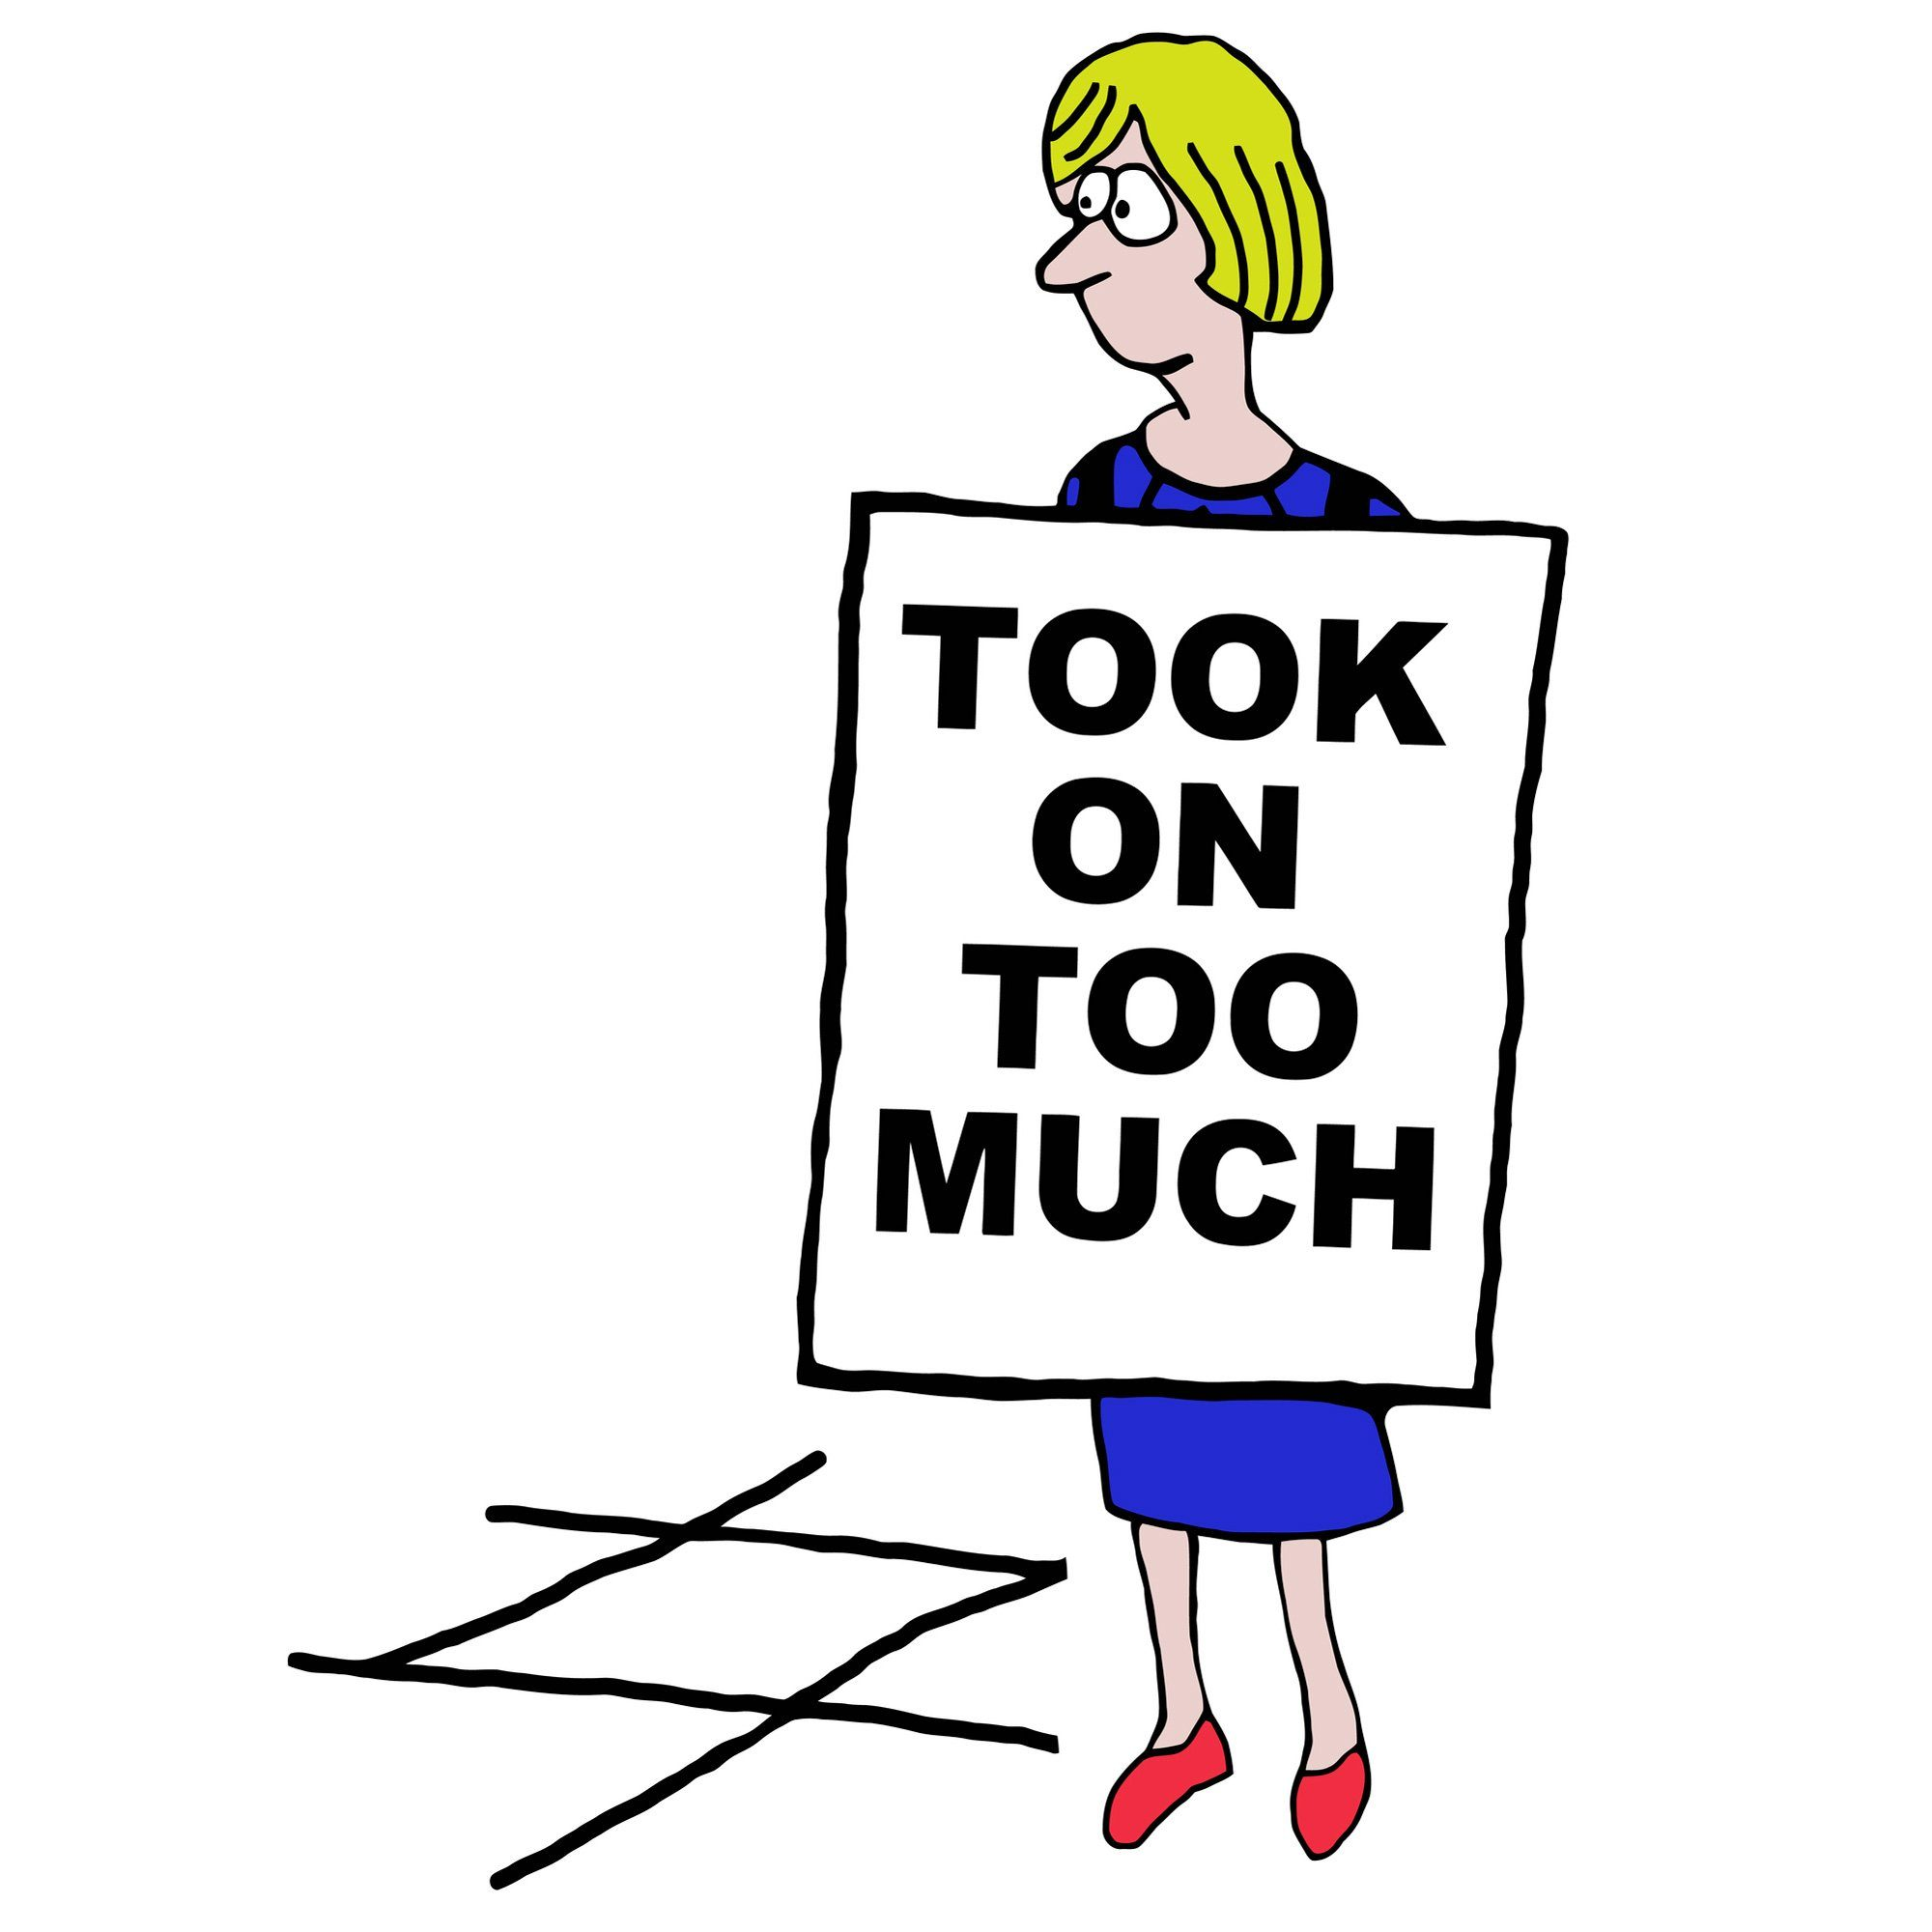 Cartoon of businesswoman wearing sandwich board sign: took on too much.